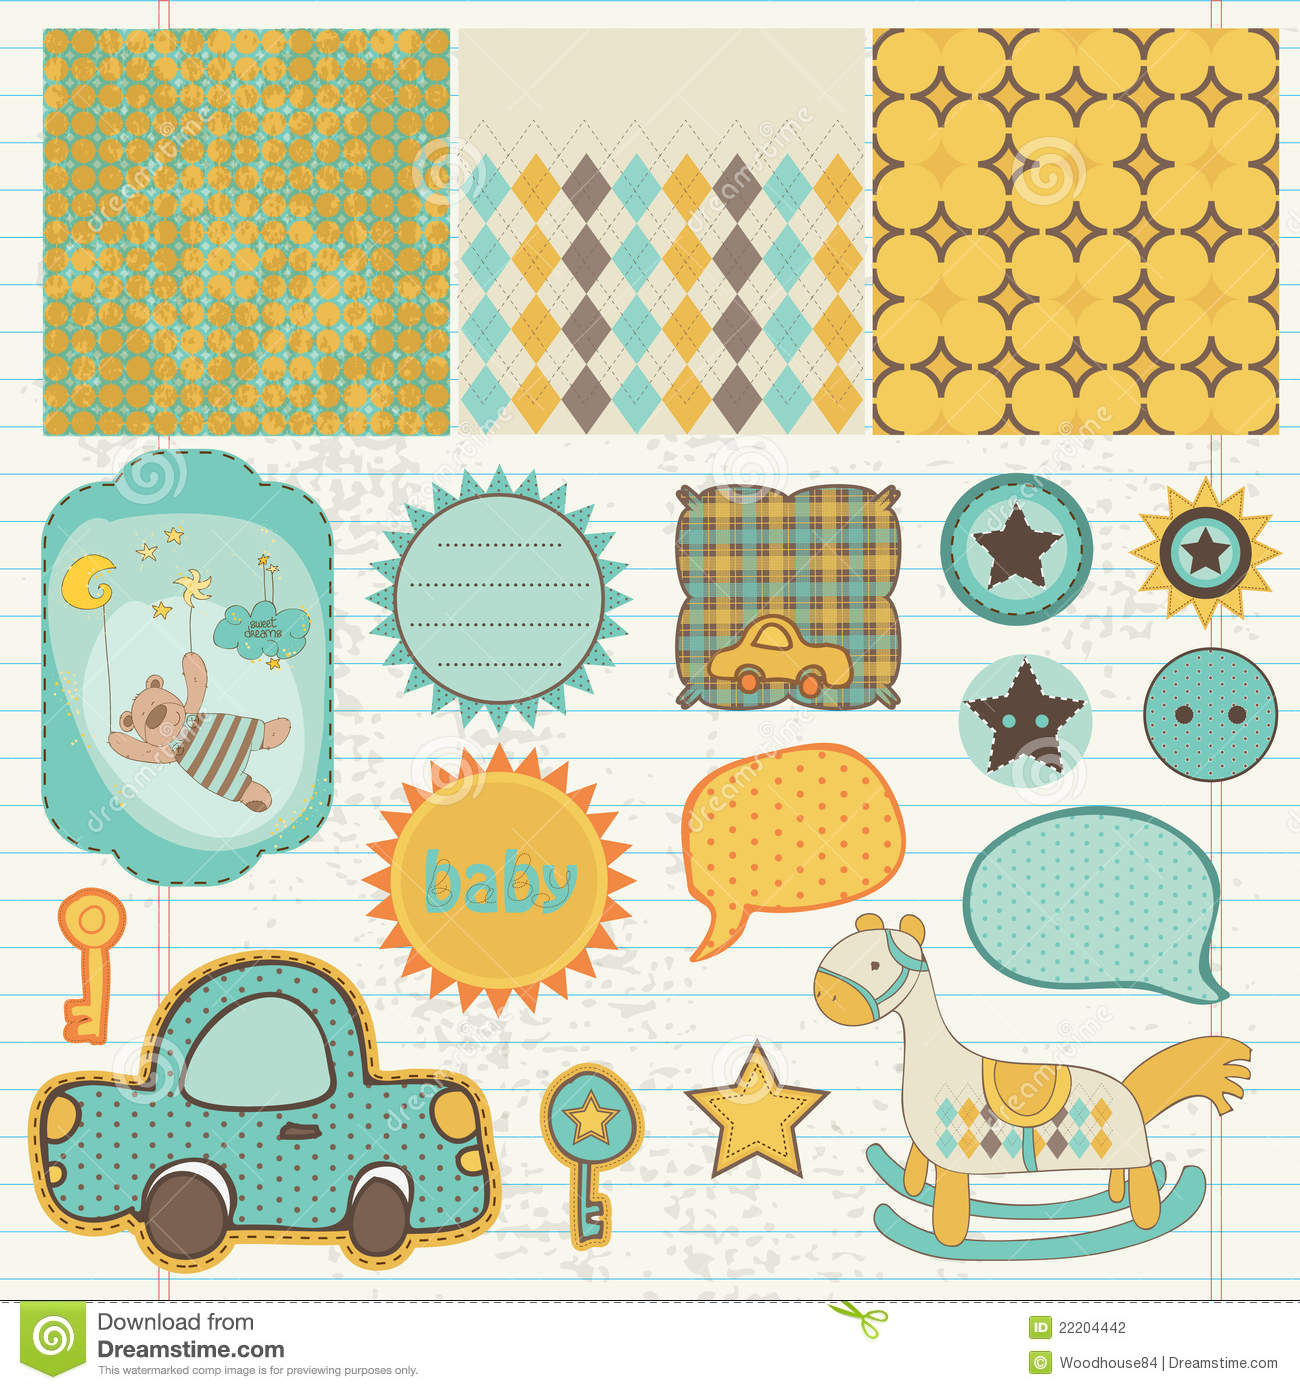 Design Elements For Baby Scrapbook Stock Photography